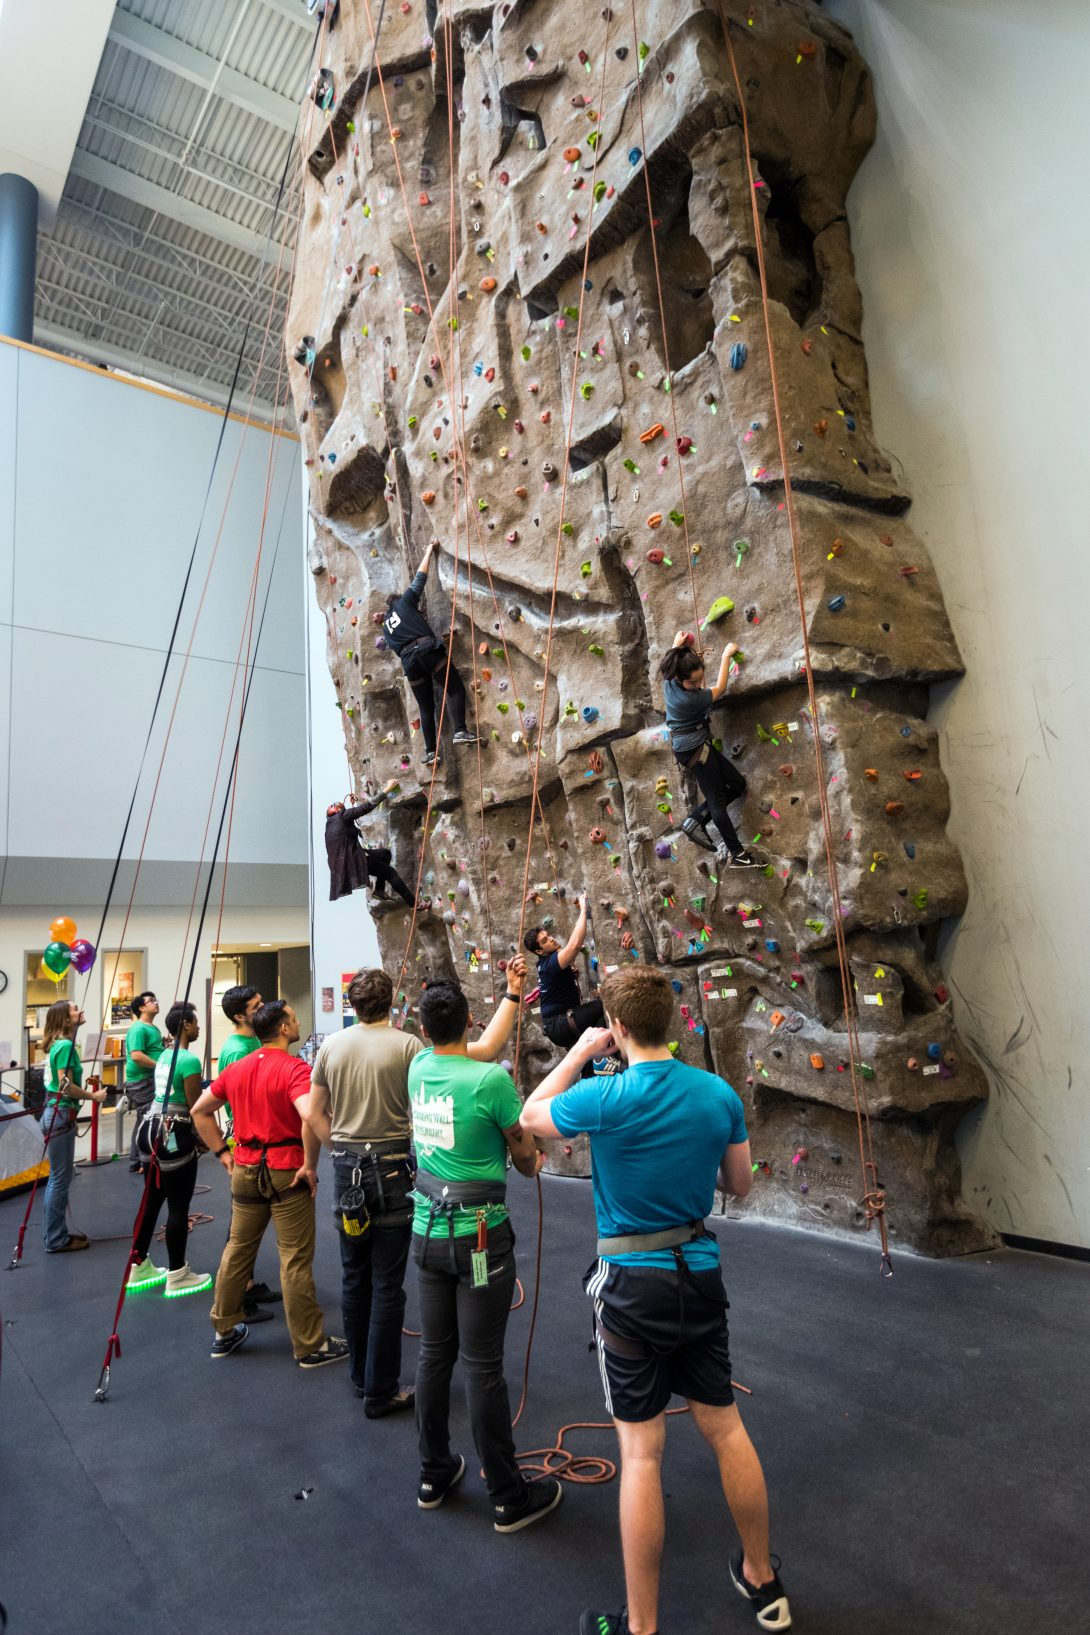 People at rock climbing wall in campus recreation center